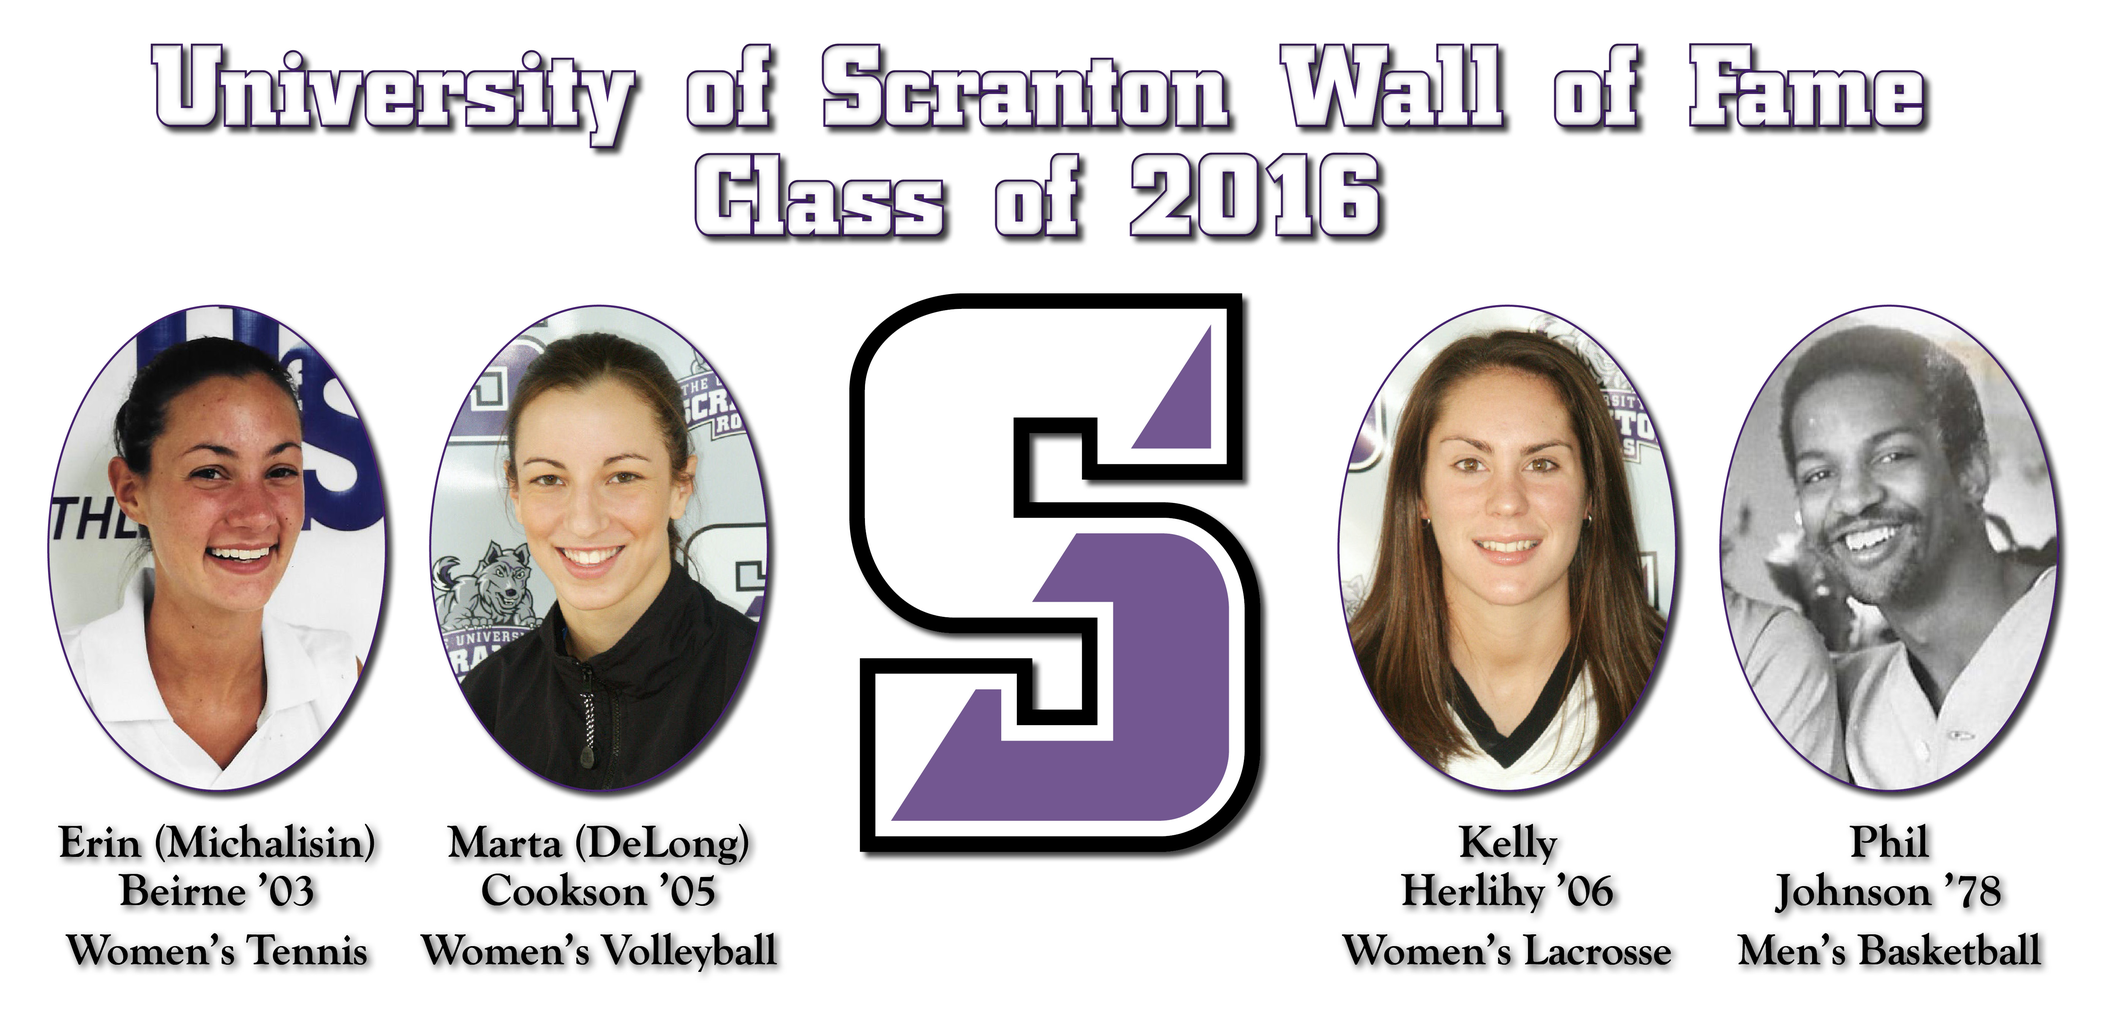 University of Scranton Announces Wall of Fame Class of 2016